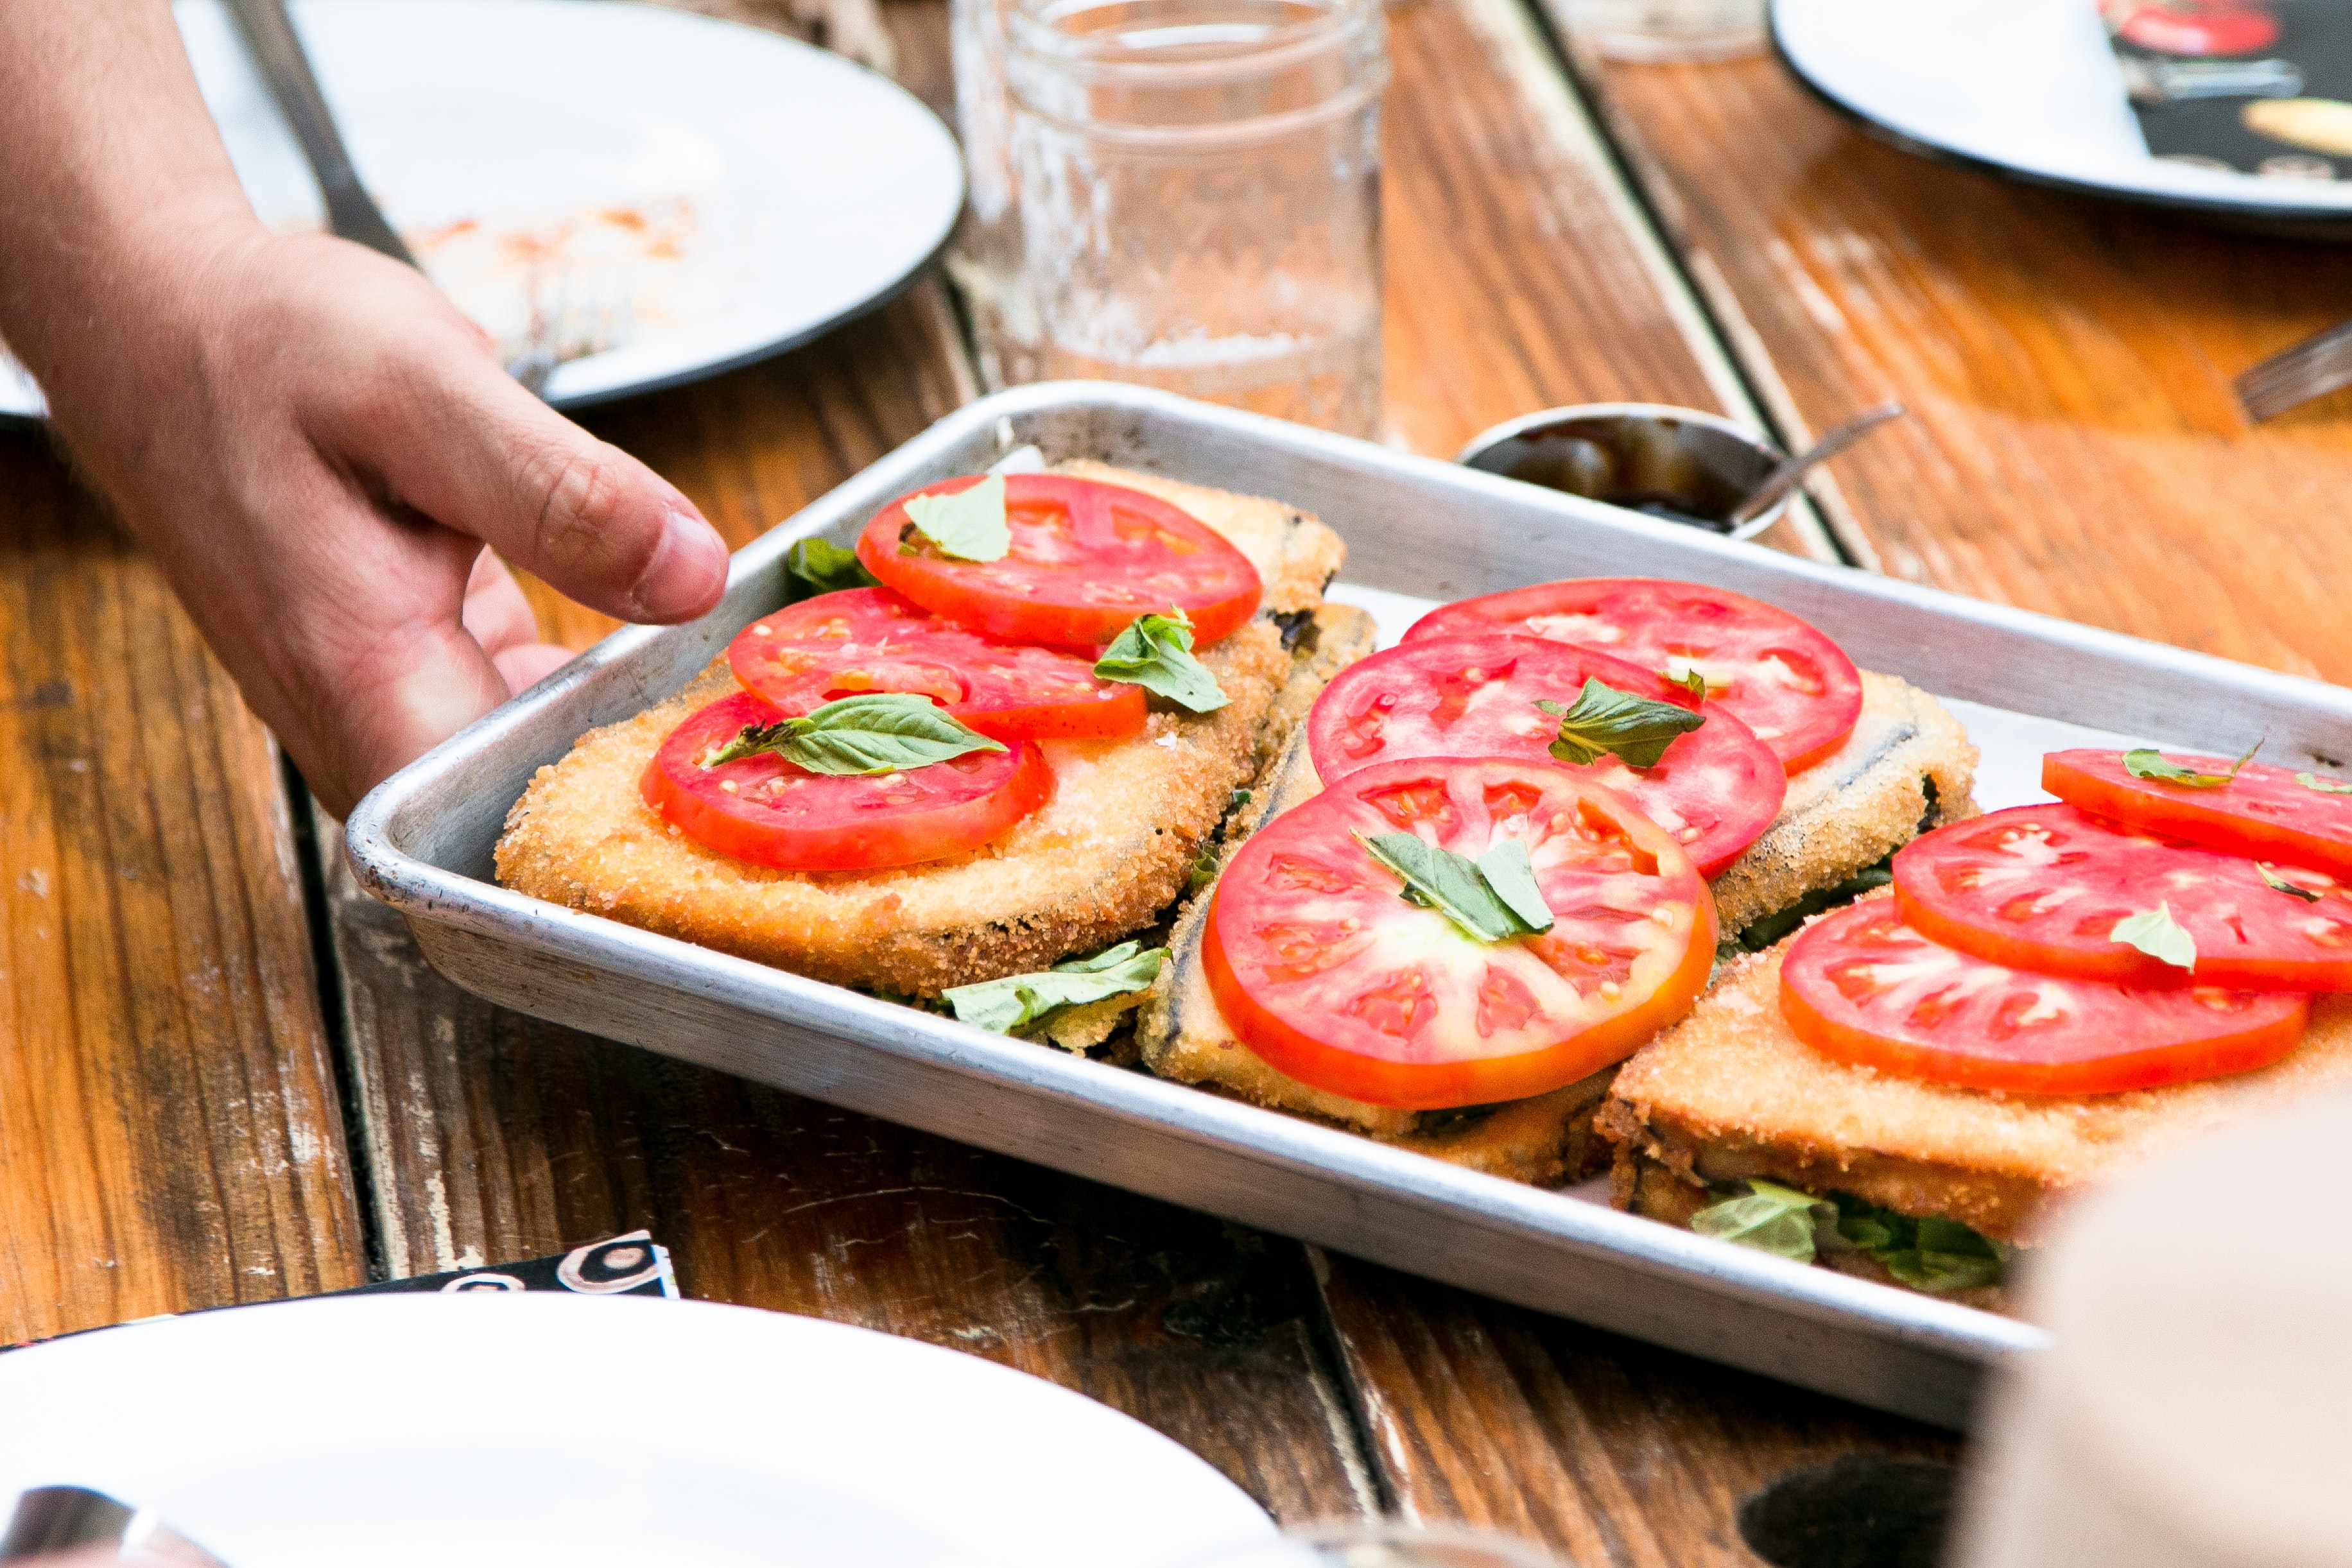 A dish topped with tomato slices and basil on a tray